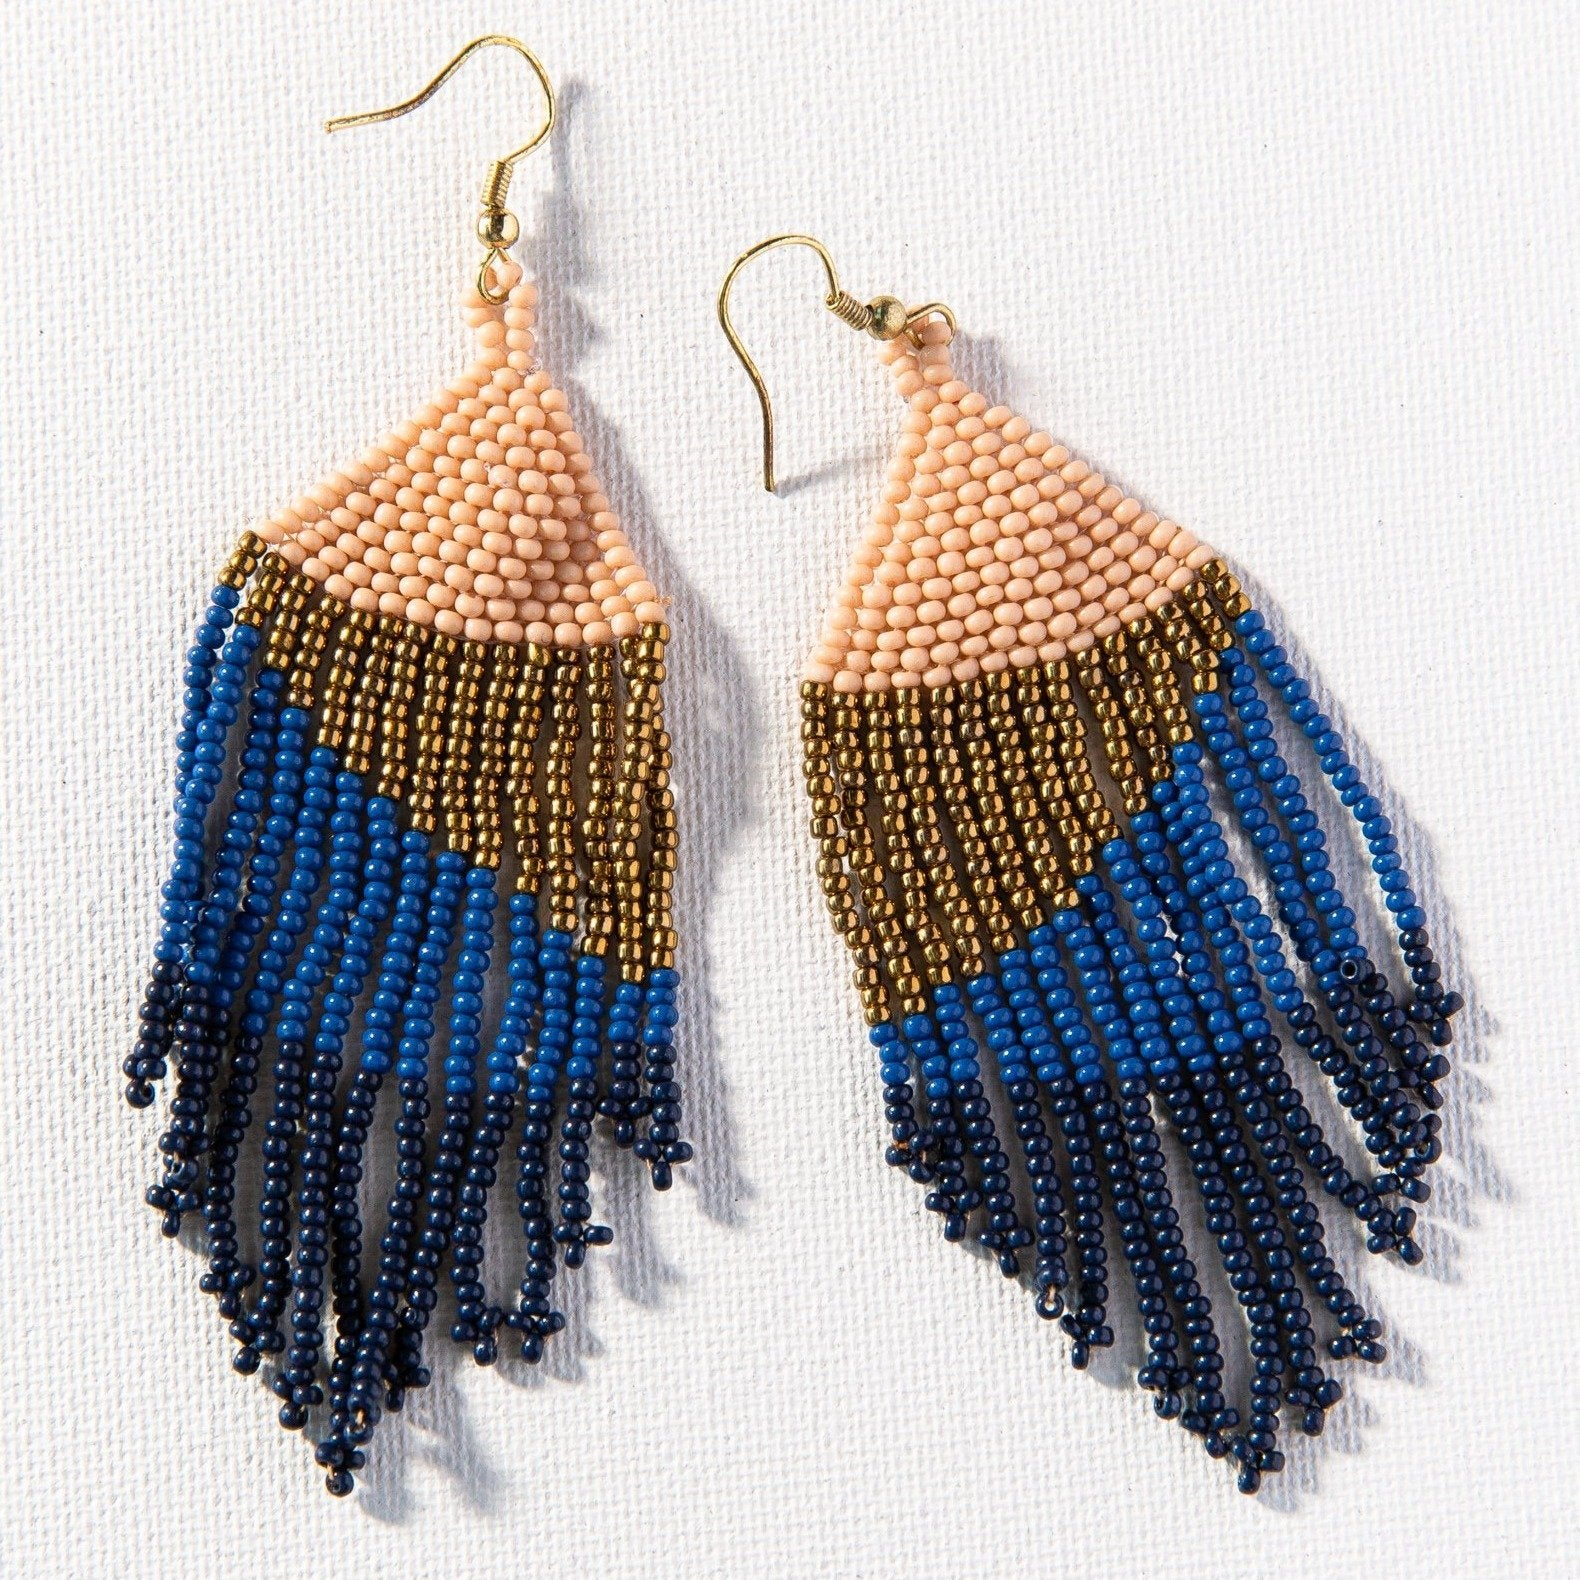 Ombre Earrings - Navy